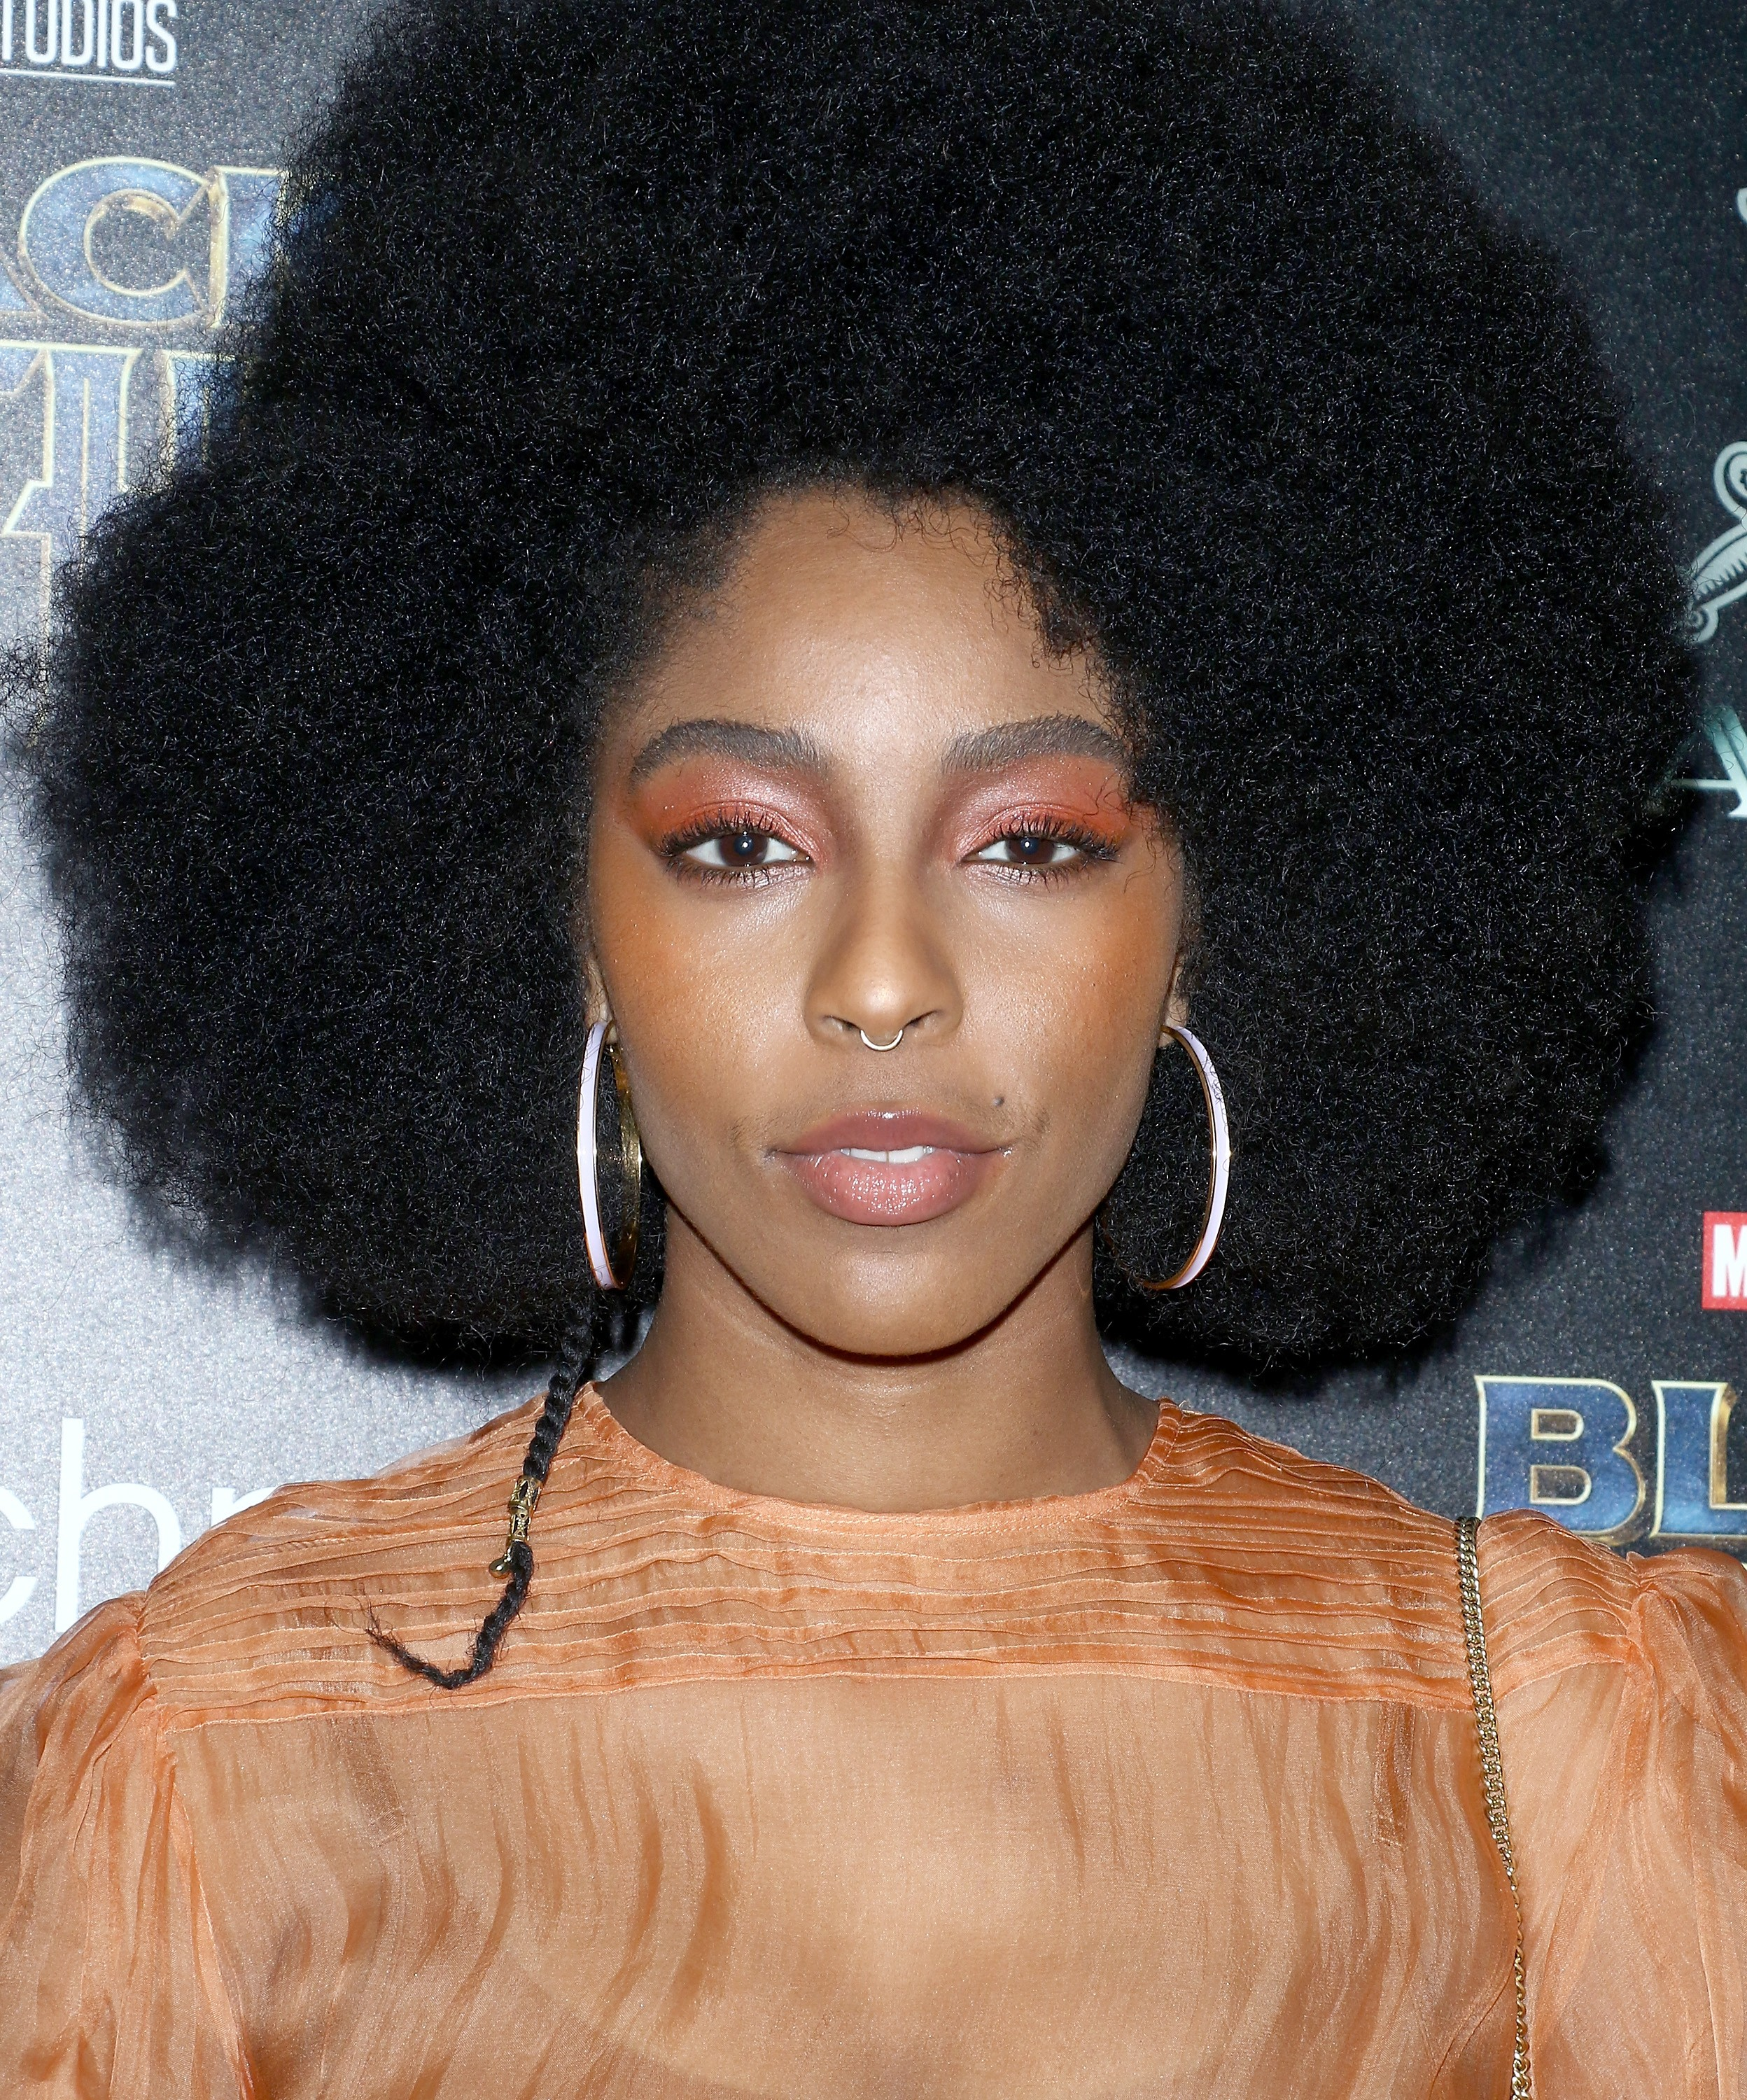 """NEW YORK, NY - FEBRUARY 13:  Jessica Williams attends the screening of Marvel Studios' """"Black Panther"""" hosted by The Cinema Society with Ravage Wines and Synchrony at Museum of Modern Art on February 13, 2018 in New York City.  (Getty Images/FC)"""